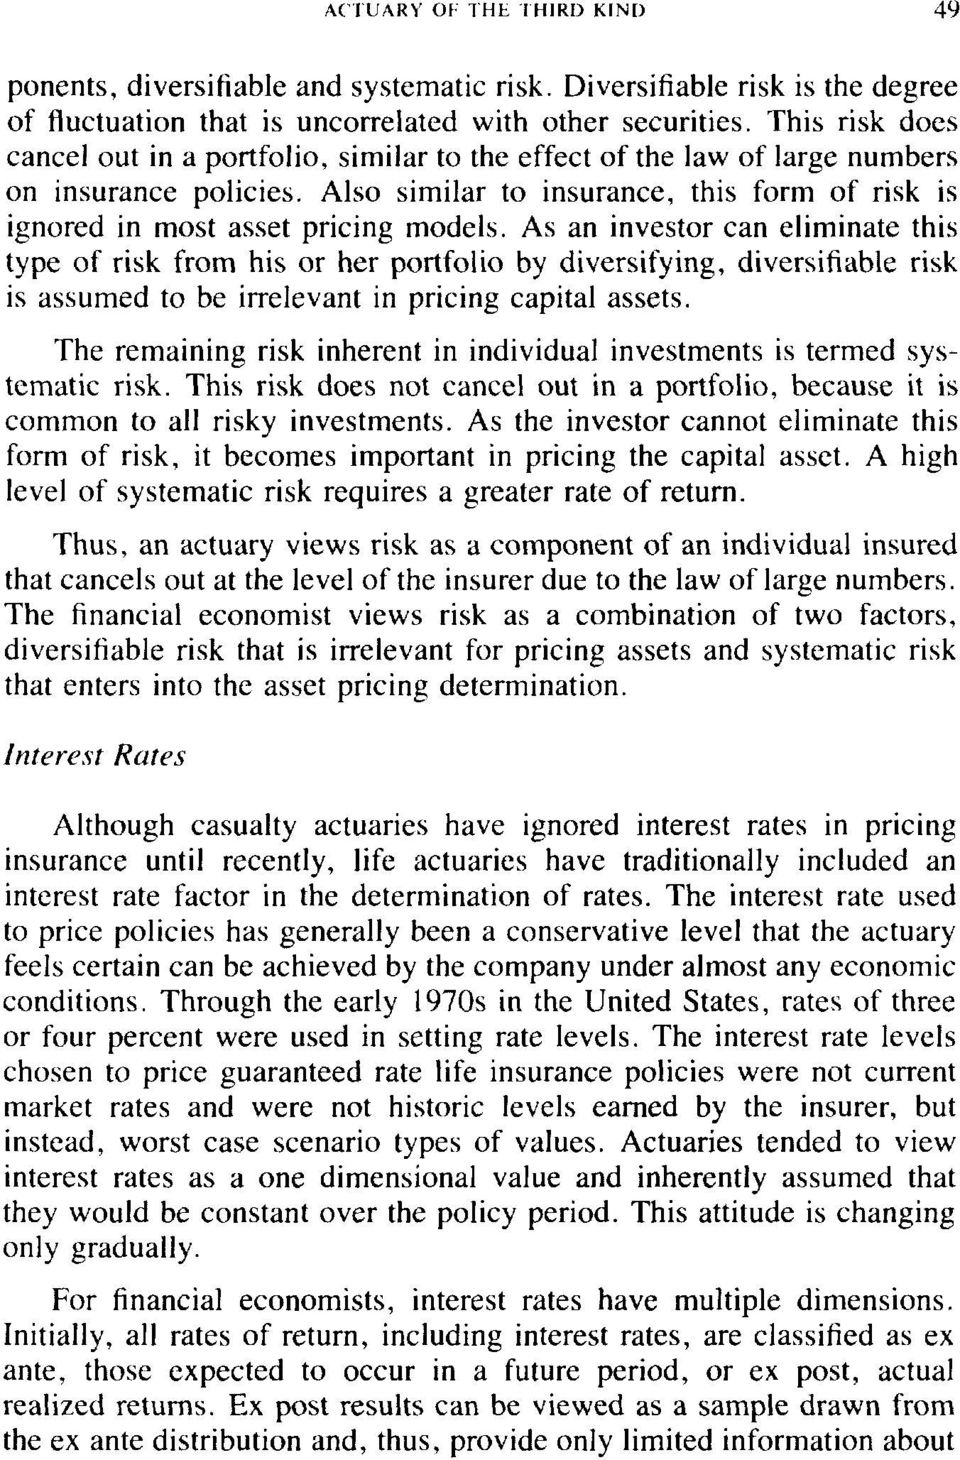 As an investor can eliminate this type of risk from his or her portfolio by diversifying, diversifiable risk is assumed to be irrelevant in pricing capital assets.